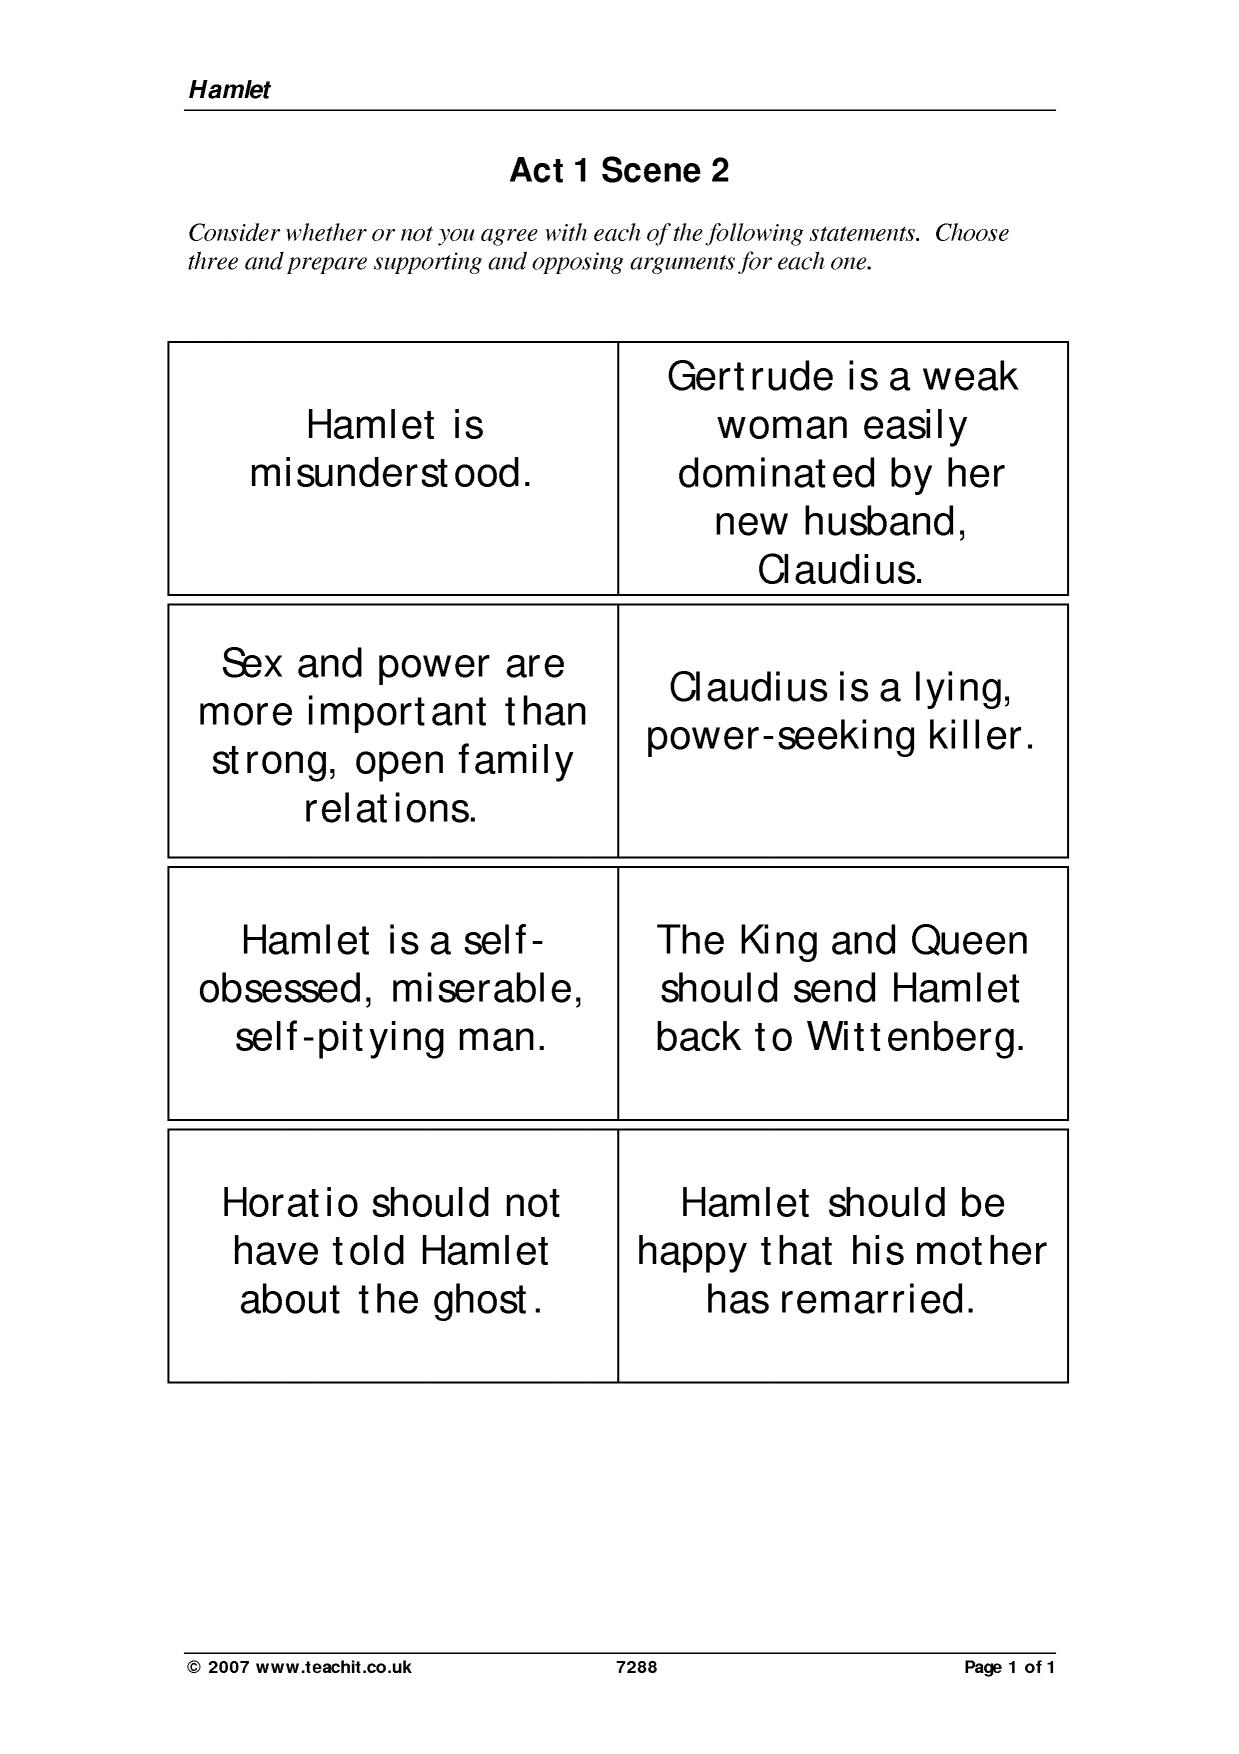 hamlet act 2 scene 2 quotes essay Hamlet act 2 scene 2 soliloquy essay writer caps ann cleves author biography essay websites for research papers quotes l occupation du domaine public.